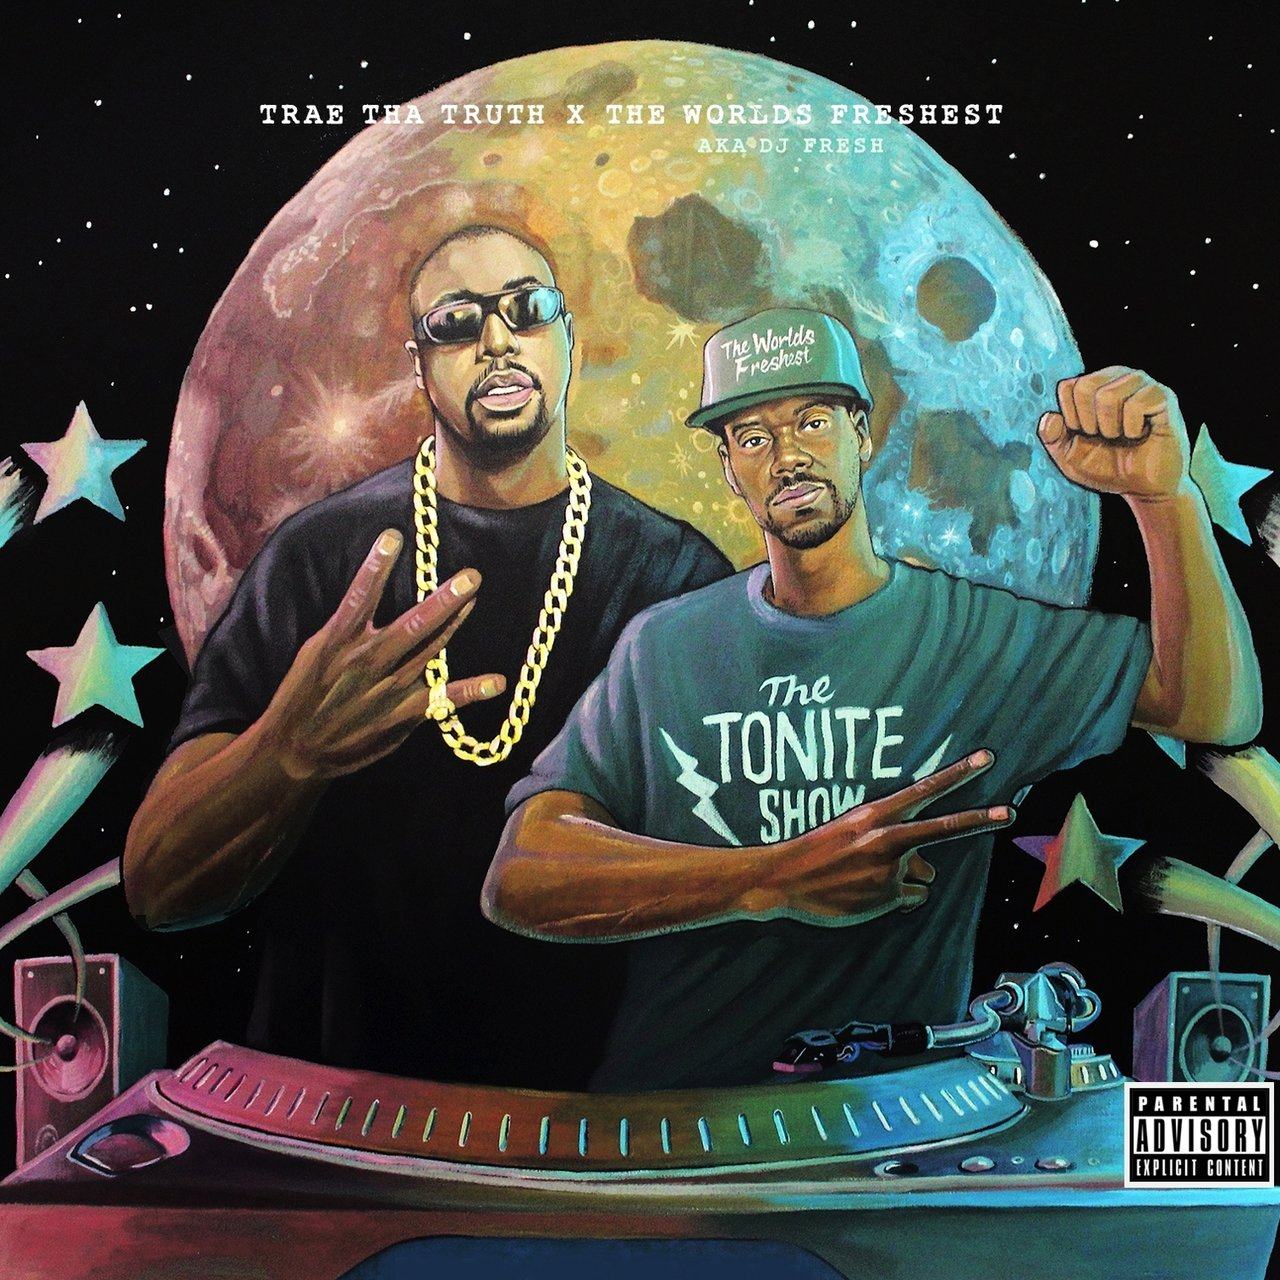 The Tonite Show with Trae Tha Truth